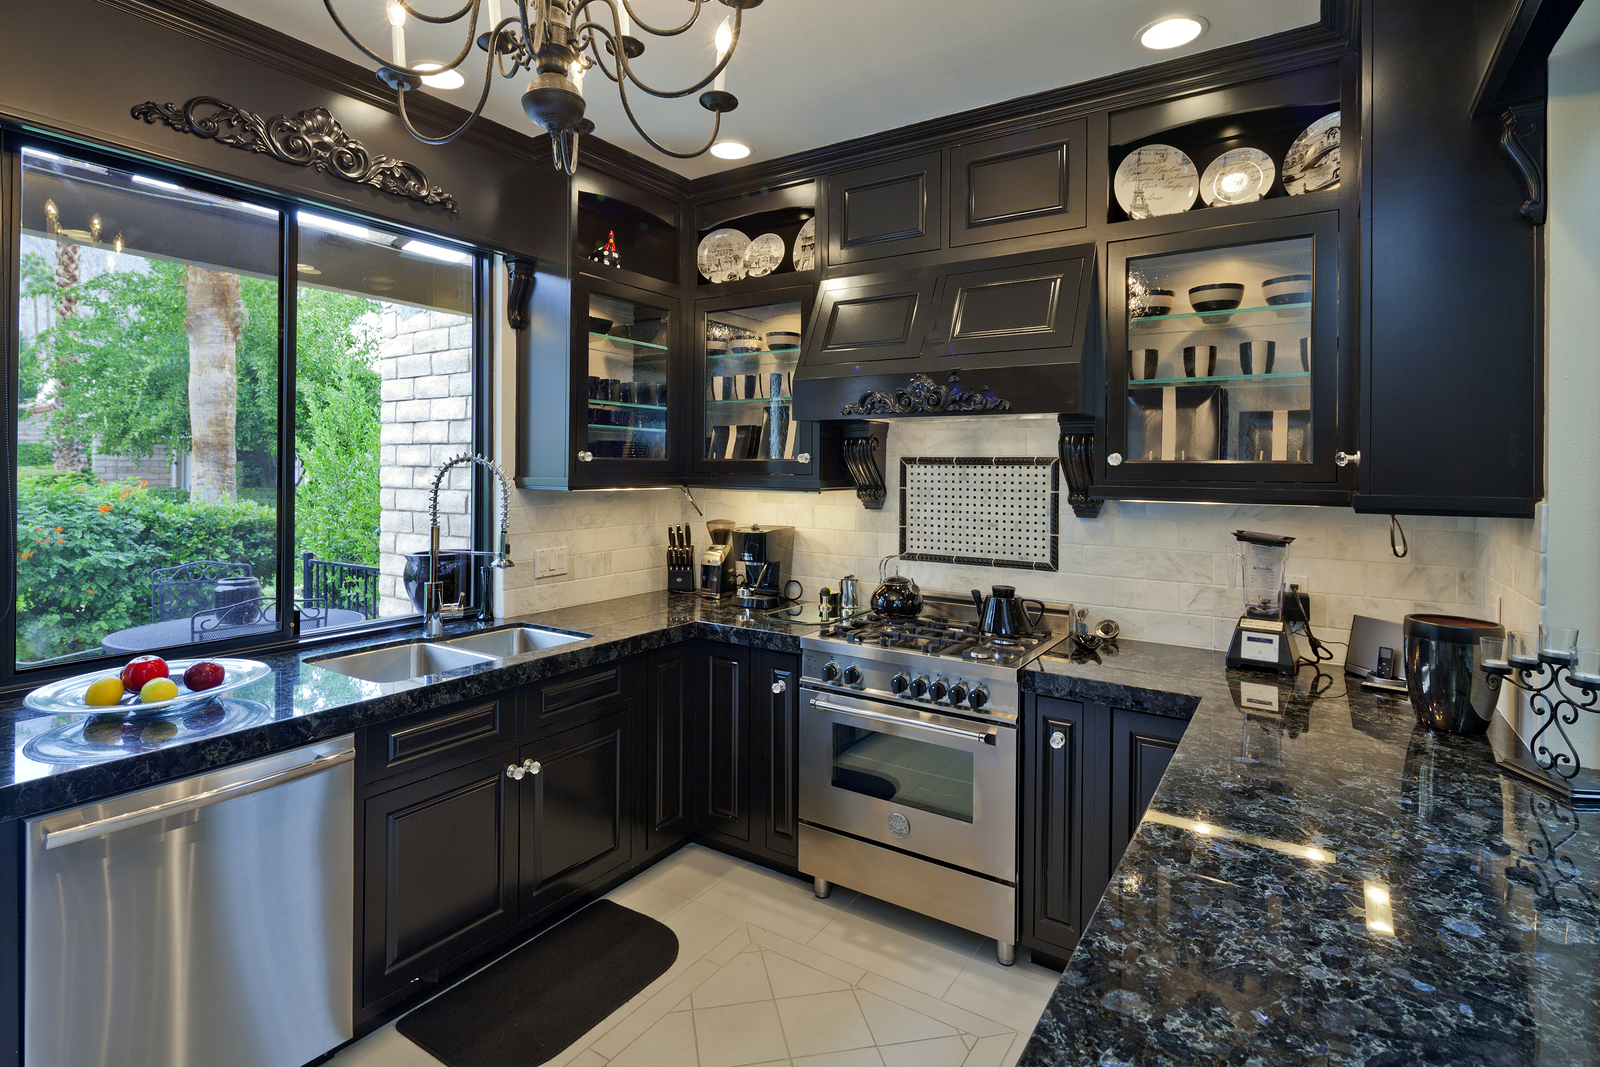 Tips For Choosing Kitchen Appliances